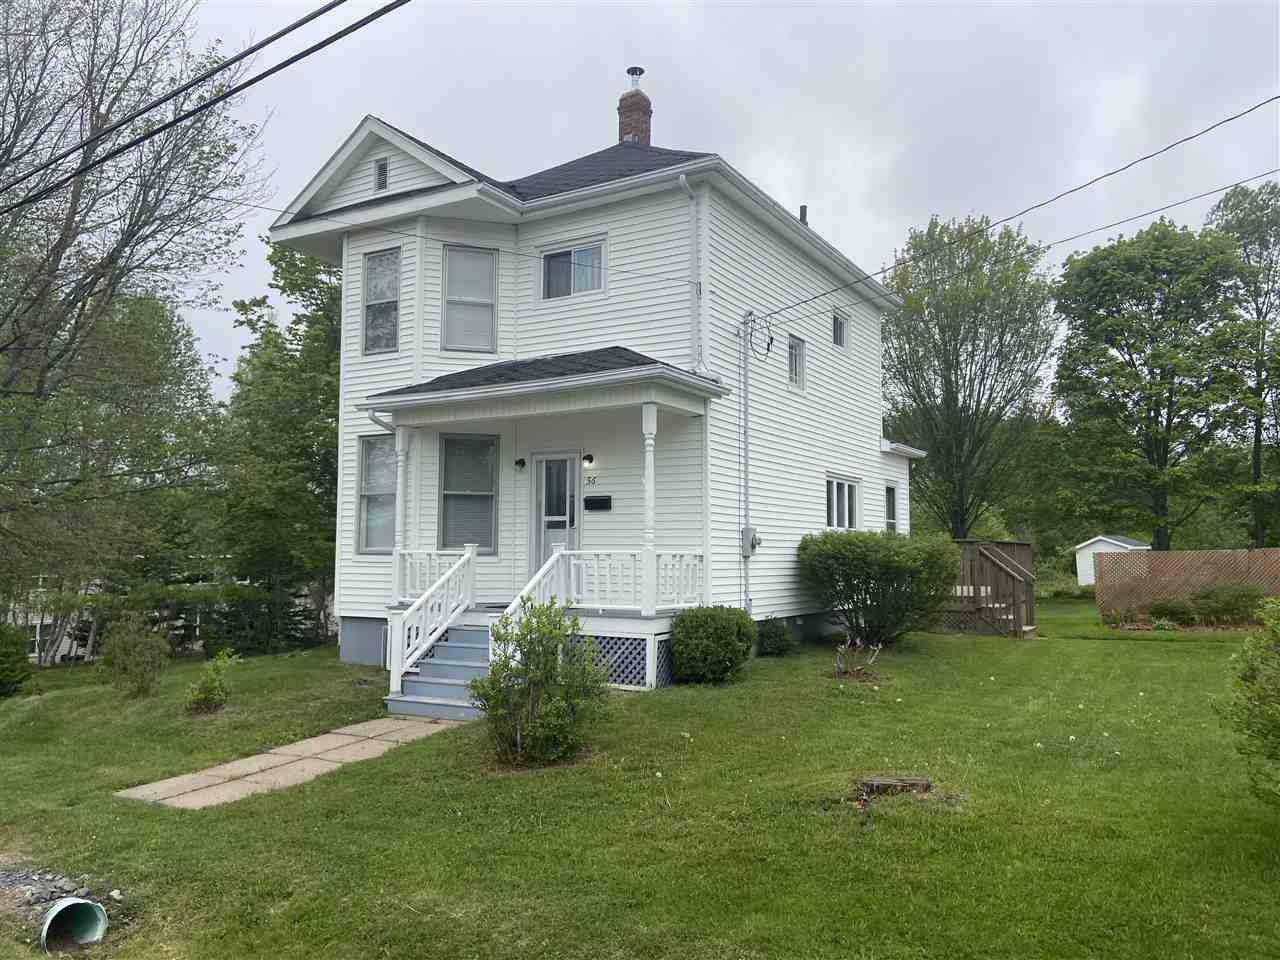 Main Photo: 56 Townsend Avenue in New Glasgow: 106-New Glasgow, Stellarton Residential for sale (Northern Region)  : MLS®# 202009902